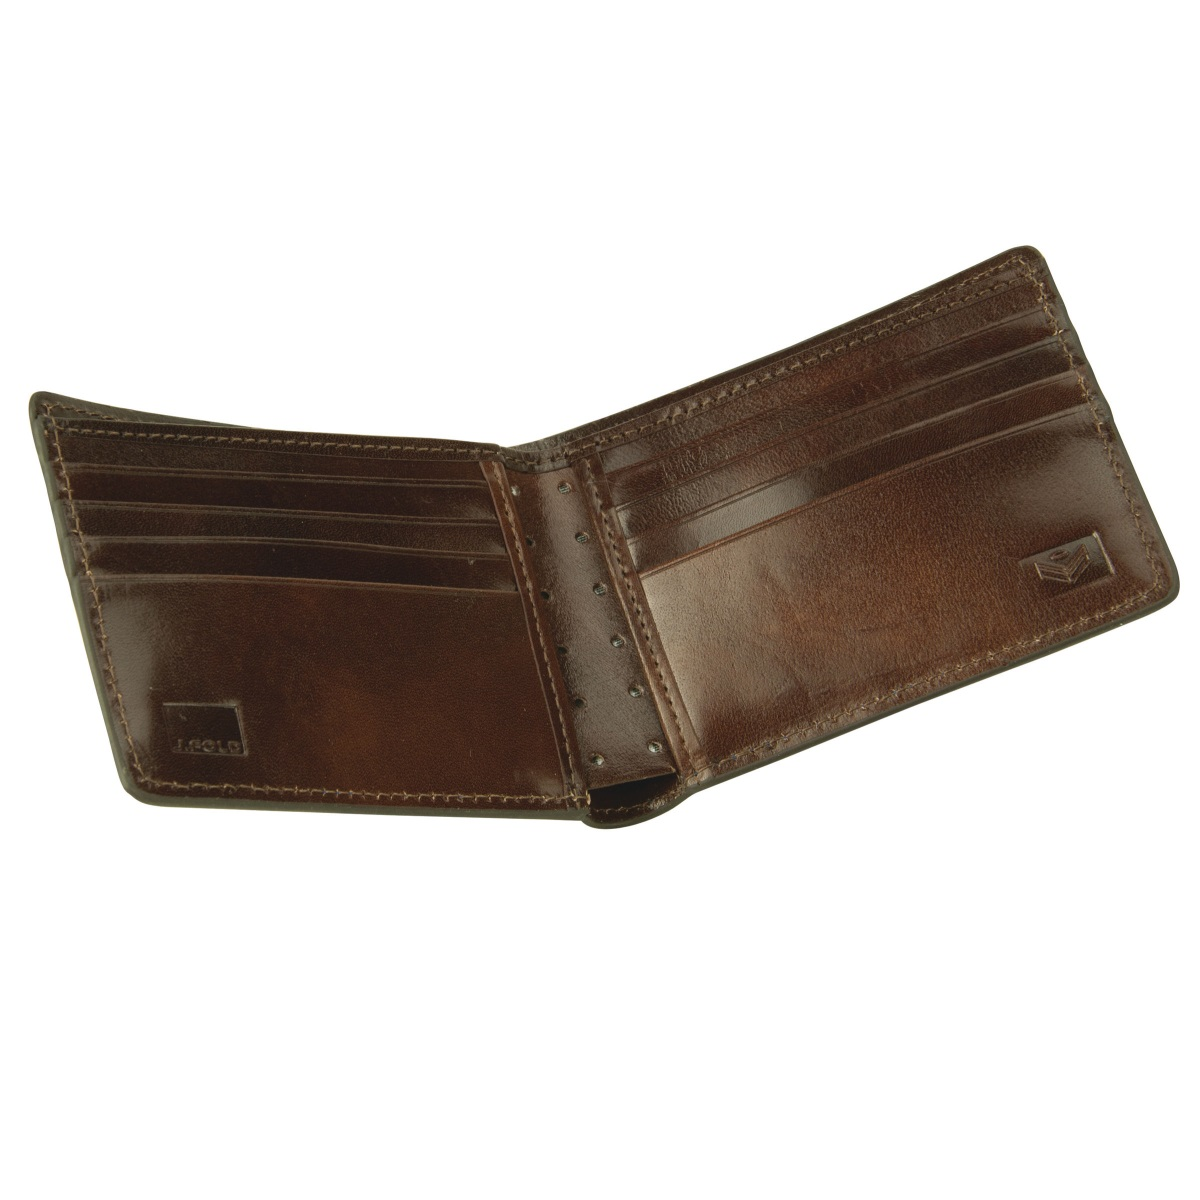 J.FOLD Thunderbird Leather Wallet - Brown/Ivory